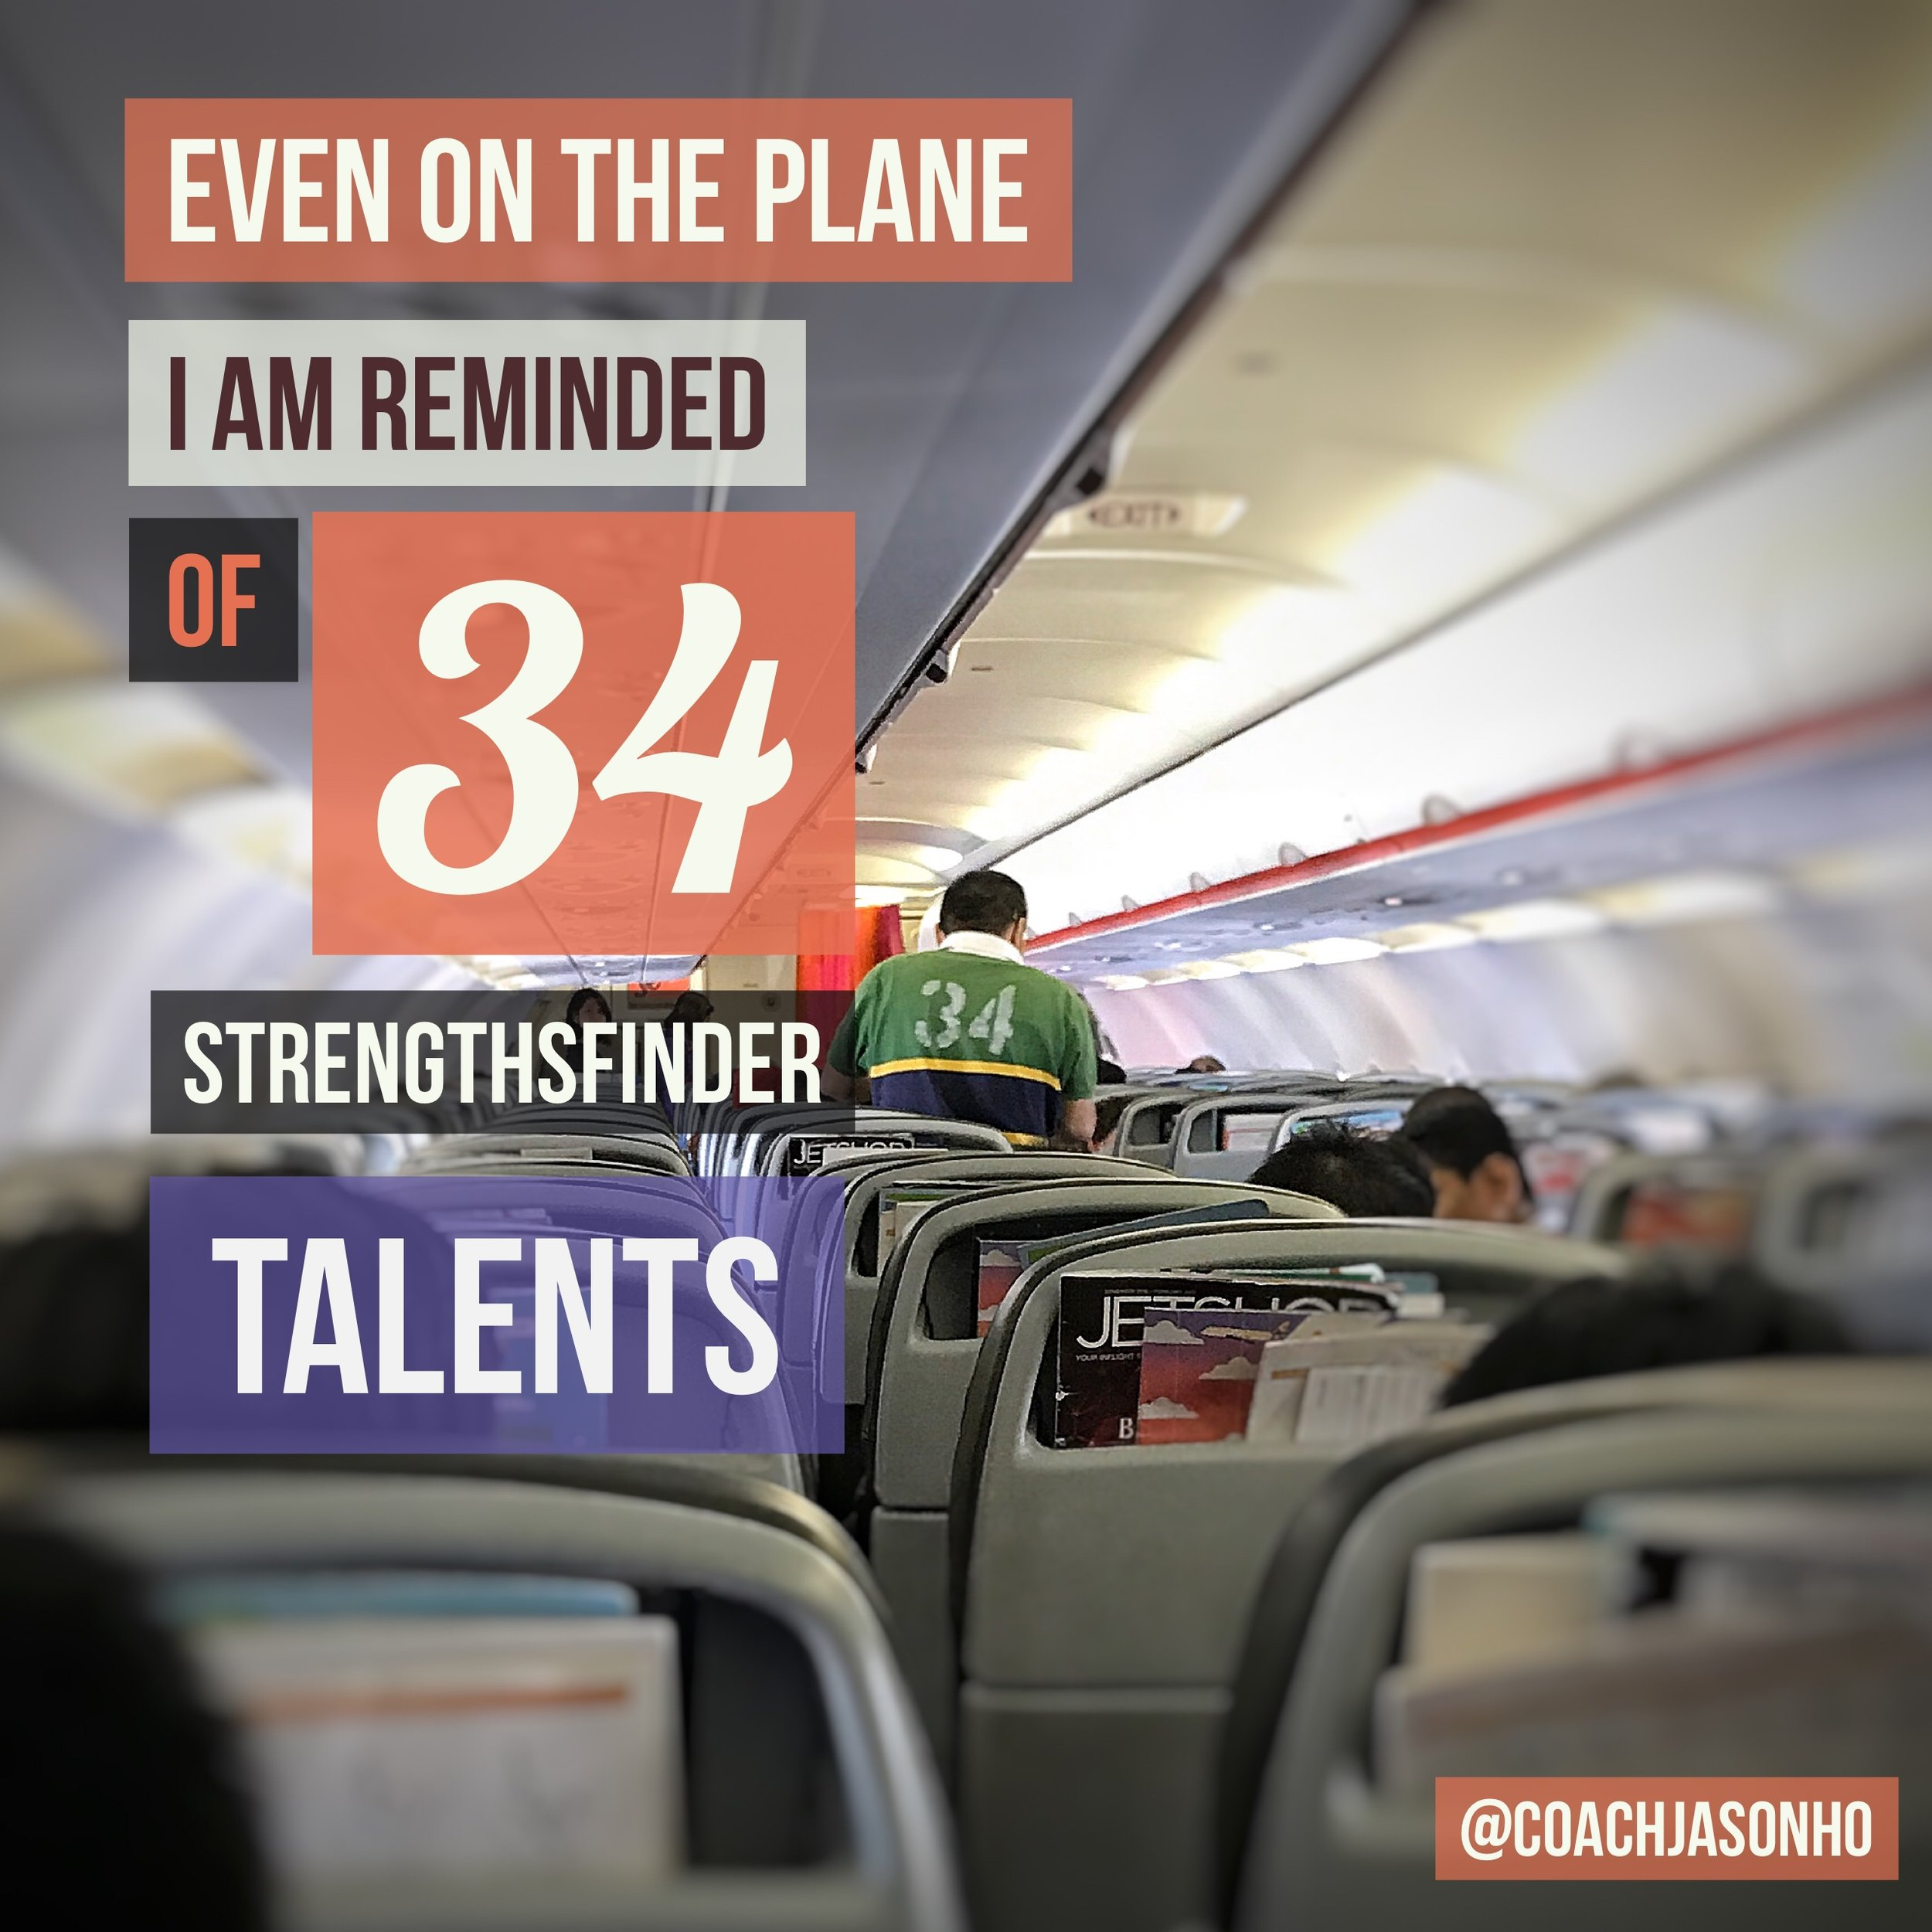 Even mid-flight from #HongKong to #Singapore I'm reminded of the #34 #StrengthsFinder #talent #themes